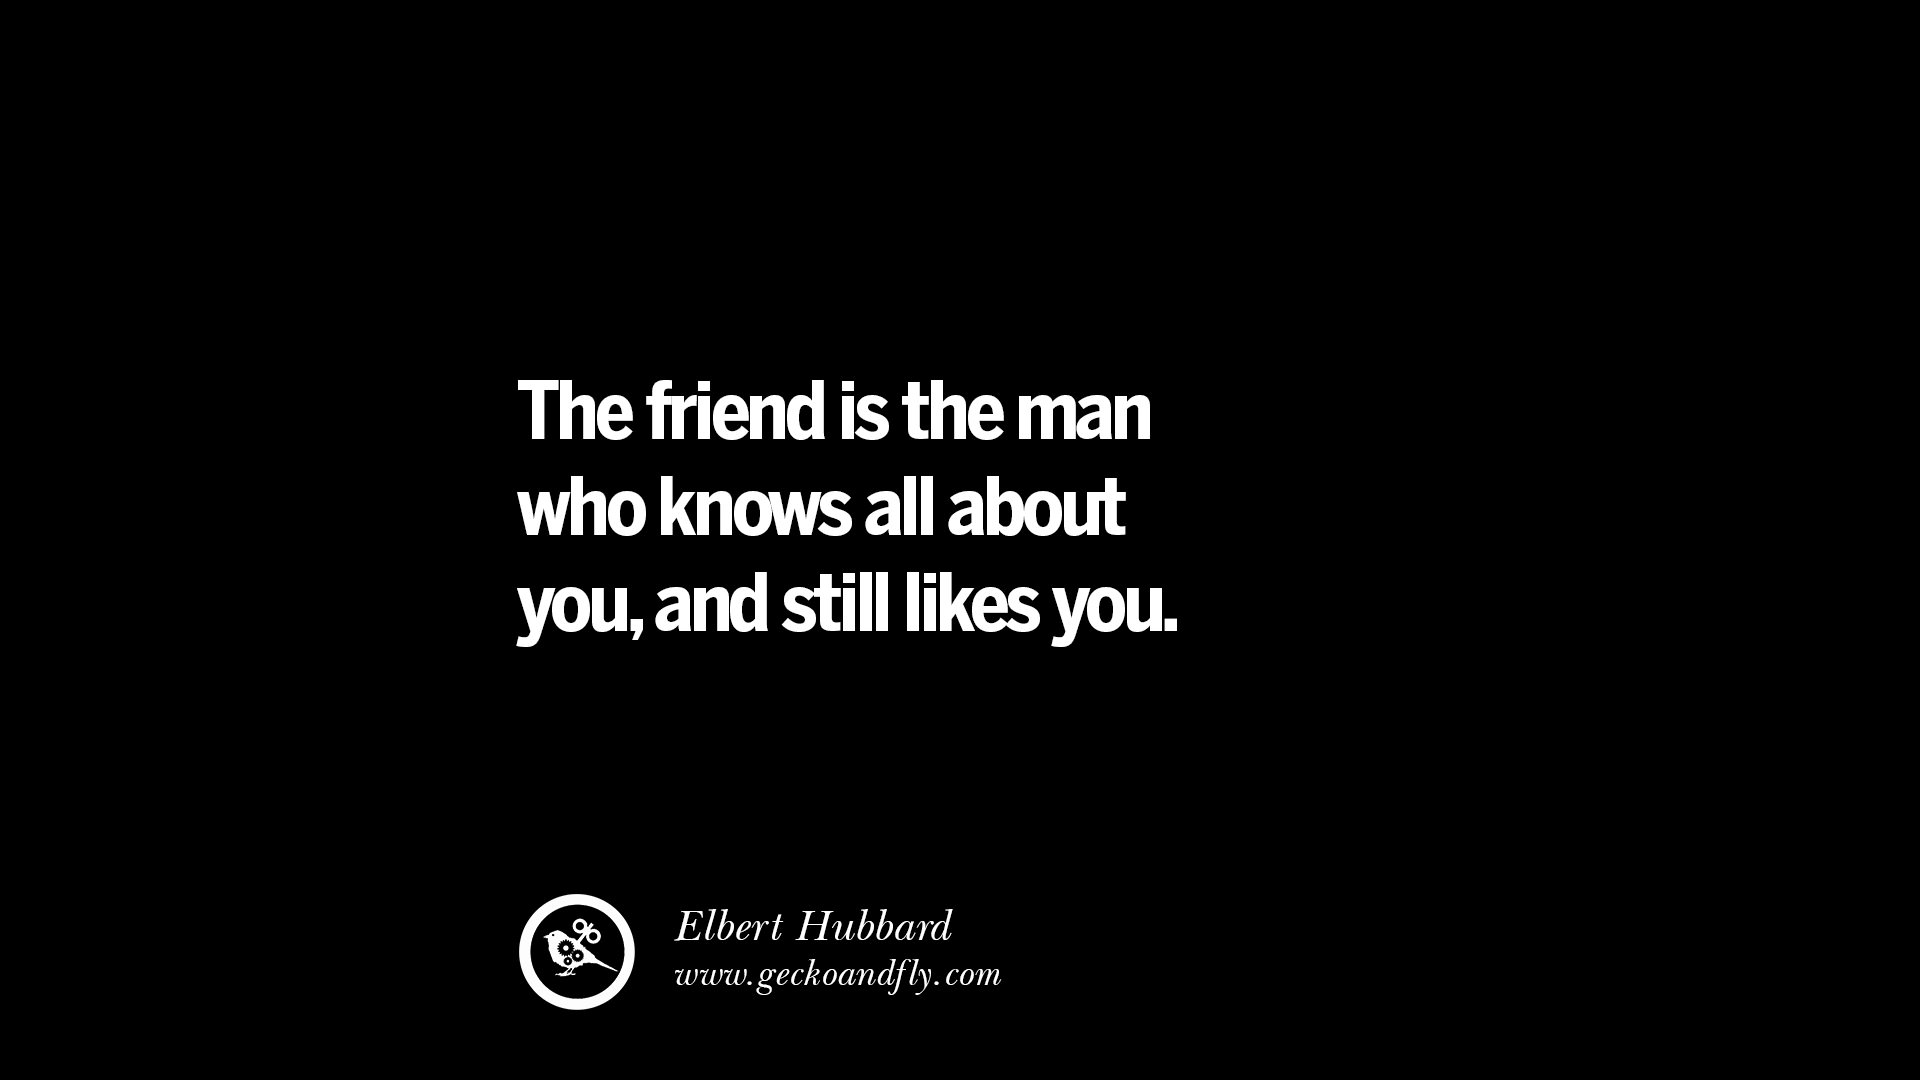 All About Friendship Quotes 20 Amazing Quotes About Friendship Love And Friends  Geckoandfly 2018